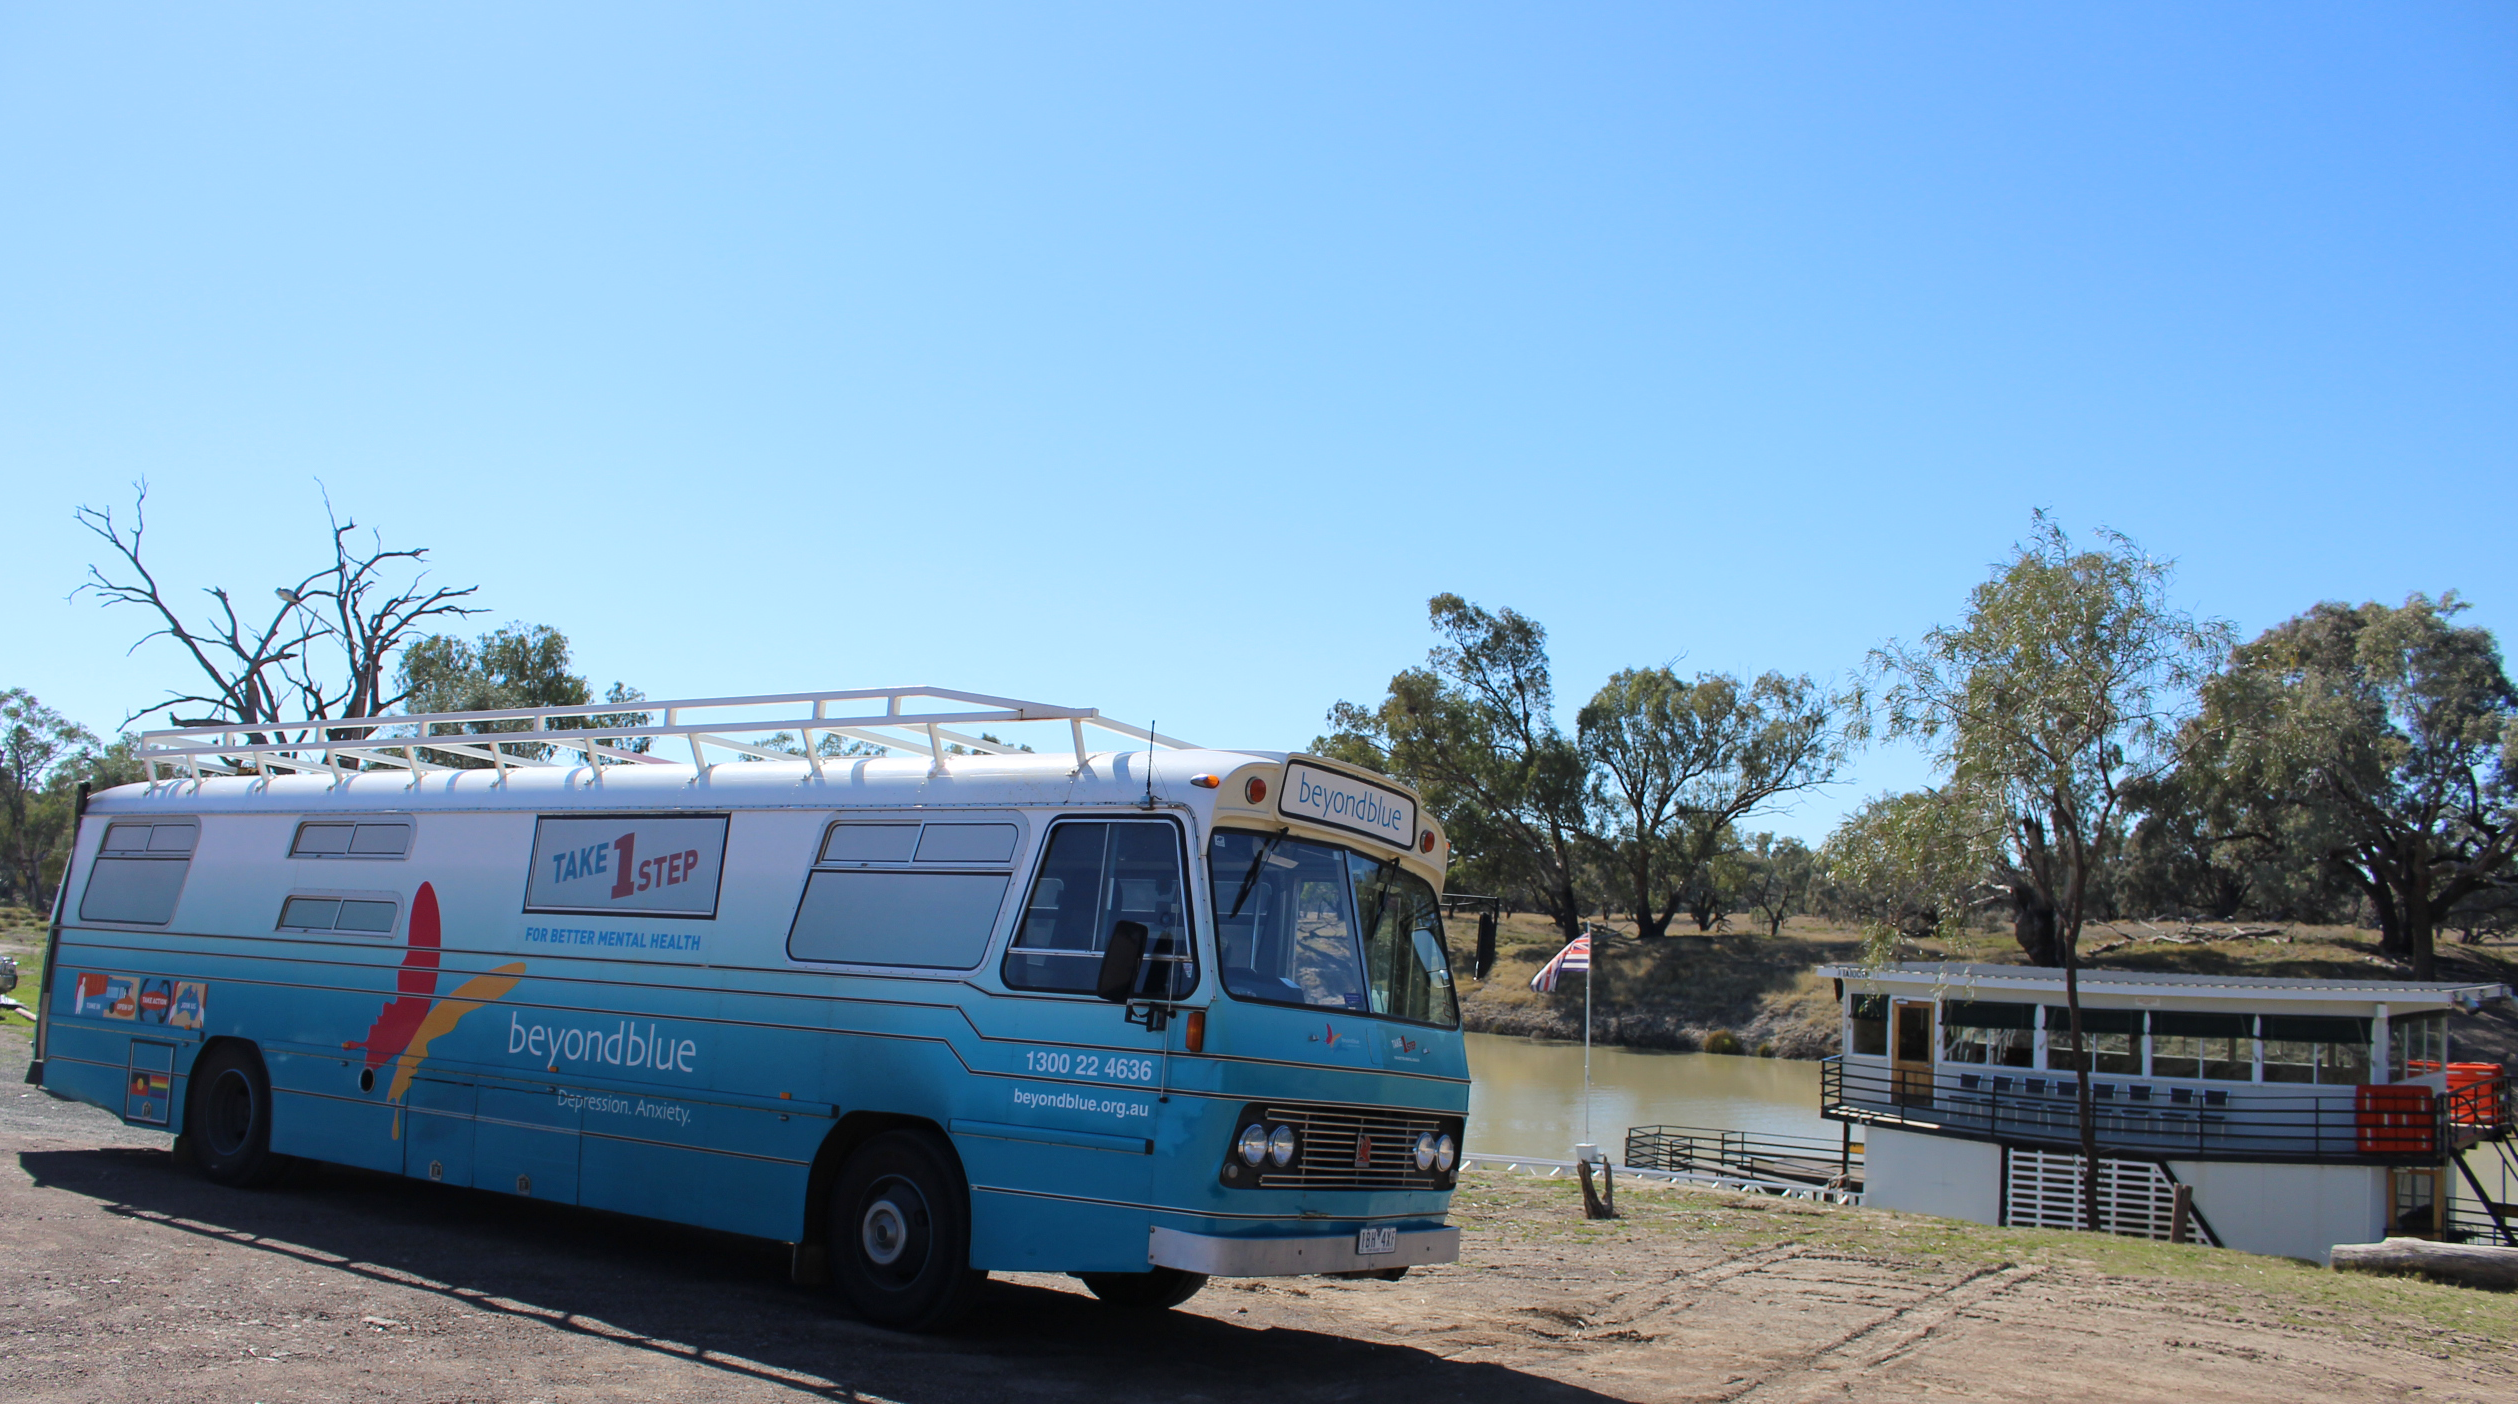 Roadshow Rhonda meets the paddlesteamer PV Jandra on the banks of the beautiful Darling River in Bourke: NSW.